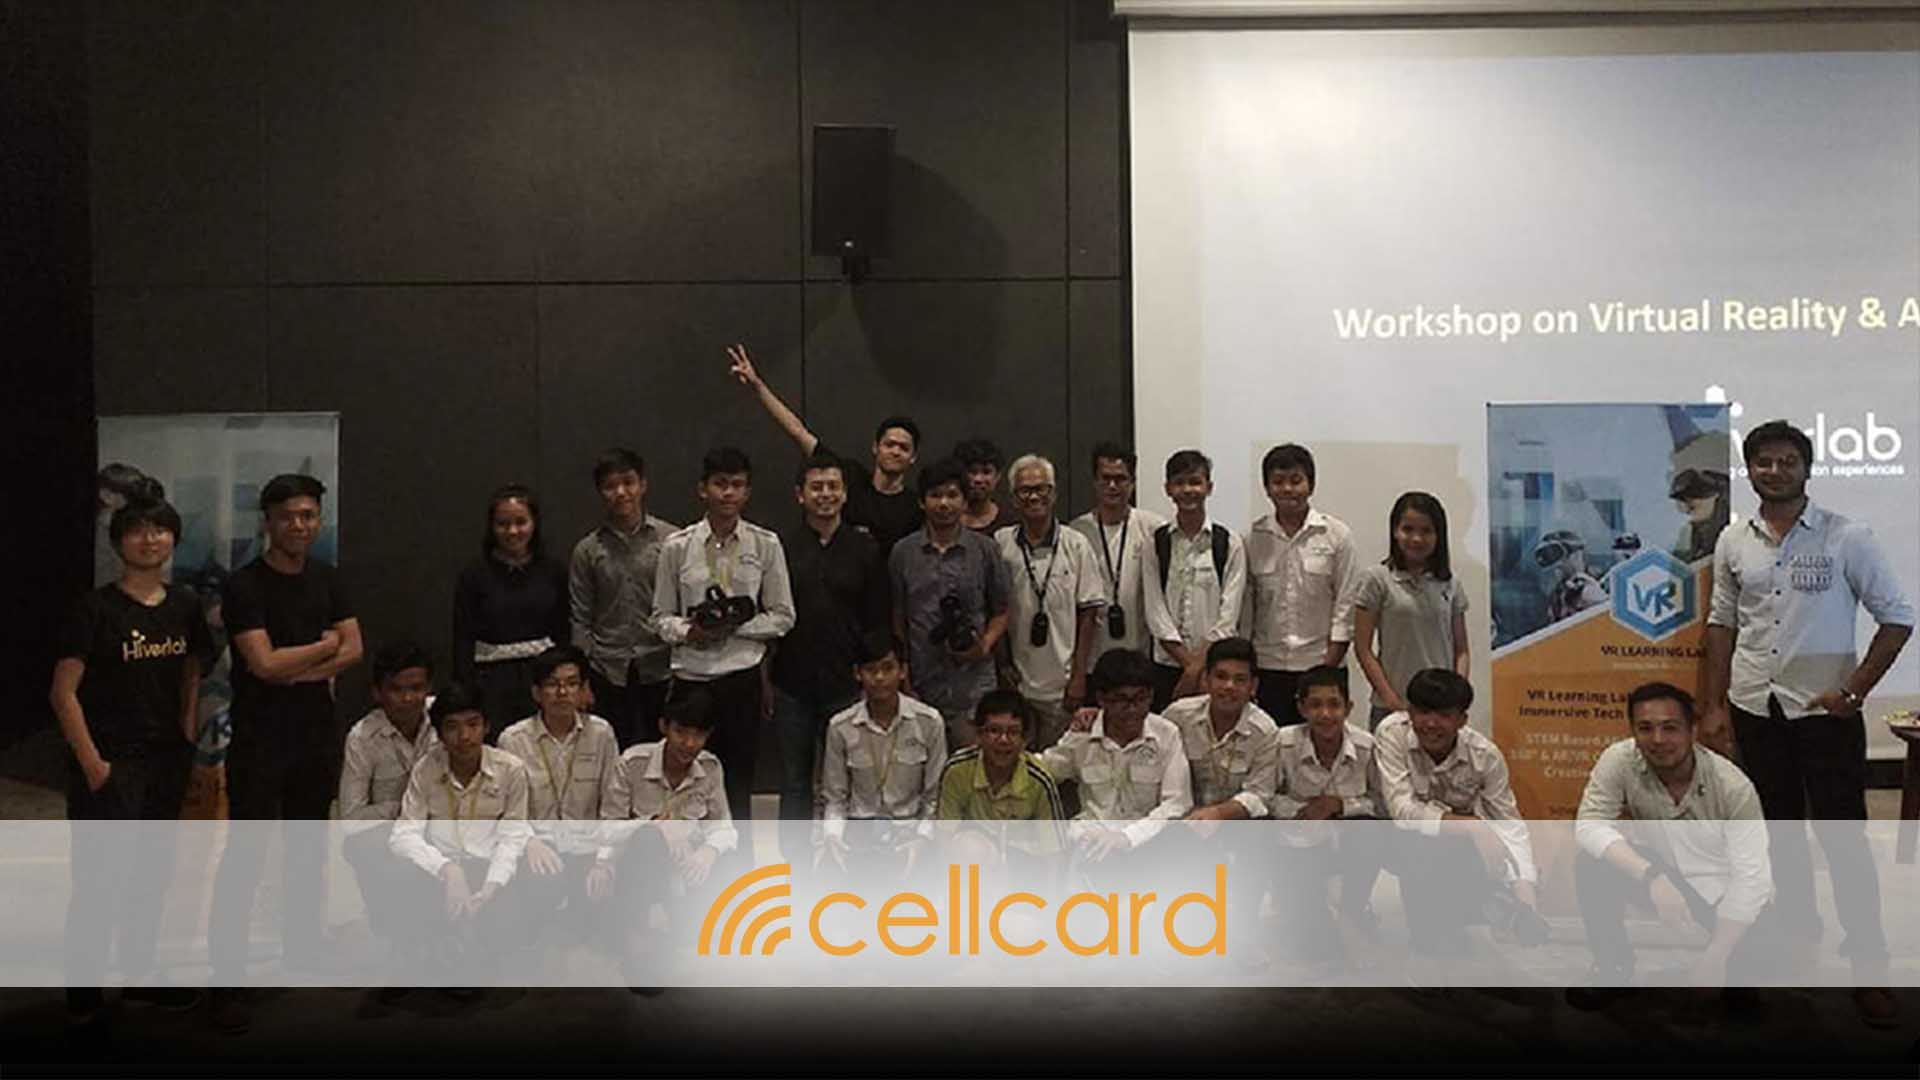 AR VR Workshop for Cellcard